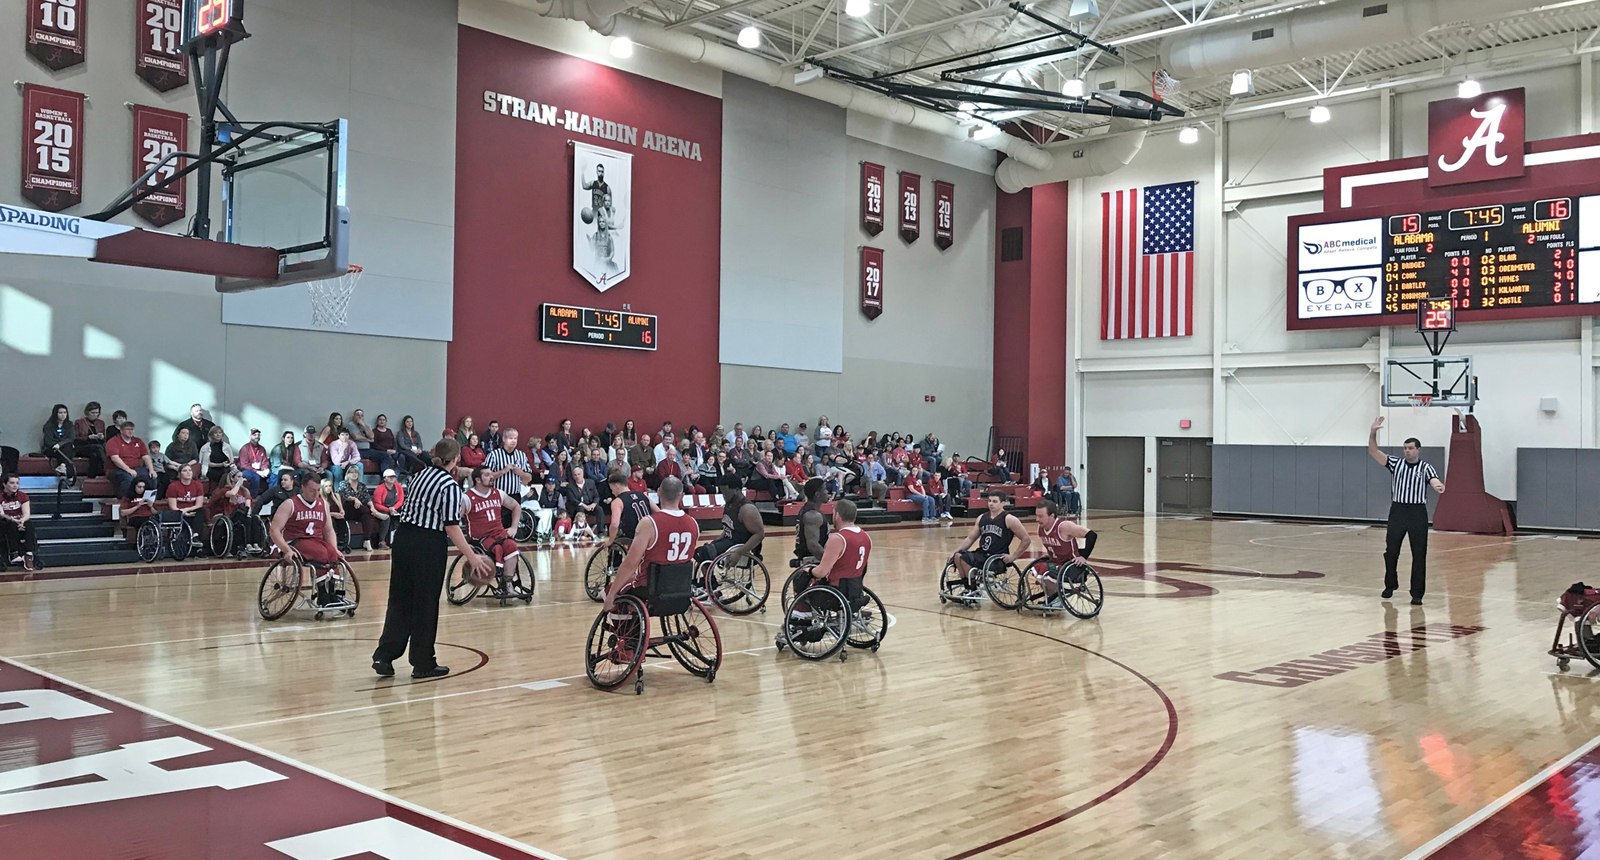 Stran Hardin Arena for Adapted Athletics at University of Alabama